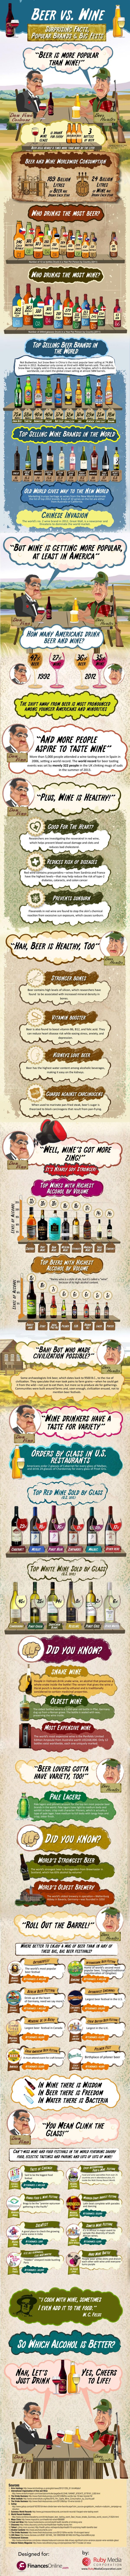 Beer vs. Wine: Surprising Facts, Popular Brands & Big Festivals